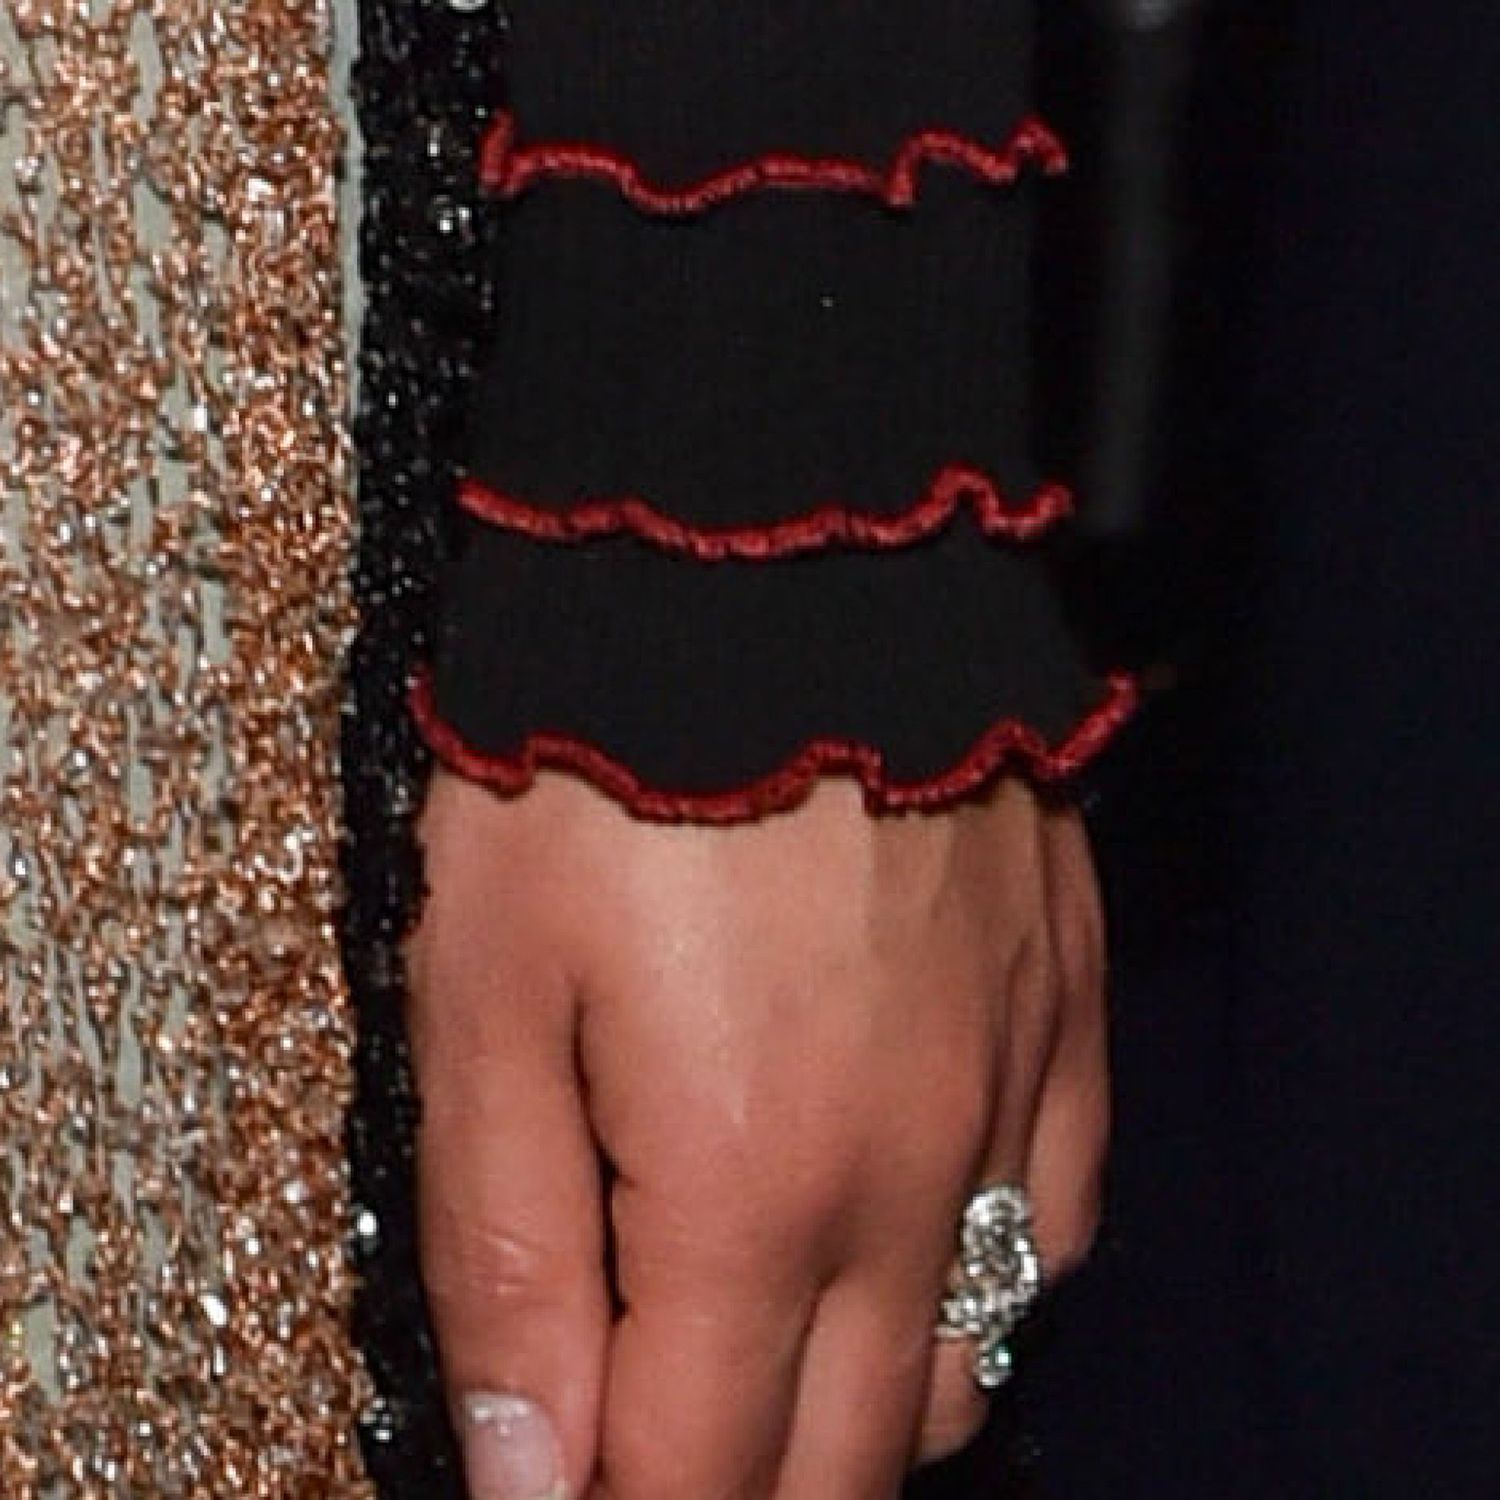 Mandatory Credit: Photo by Nick Harvey/REX Shutterstock (2699598bd)&#xA&#x3B;FKA Twigs with a ring on her wedding finger&#xA&#x3B;Swarovski Crystal World reopening evening gala, Wattens, Austria - 28 Apr 2015&#xA&#x3B;&#xA&#x3B;